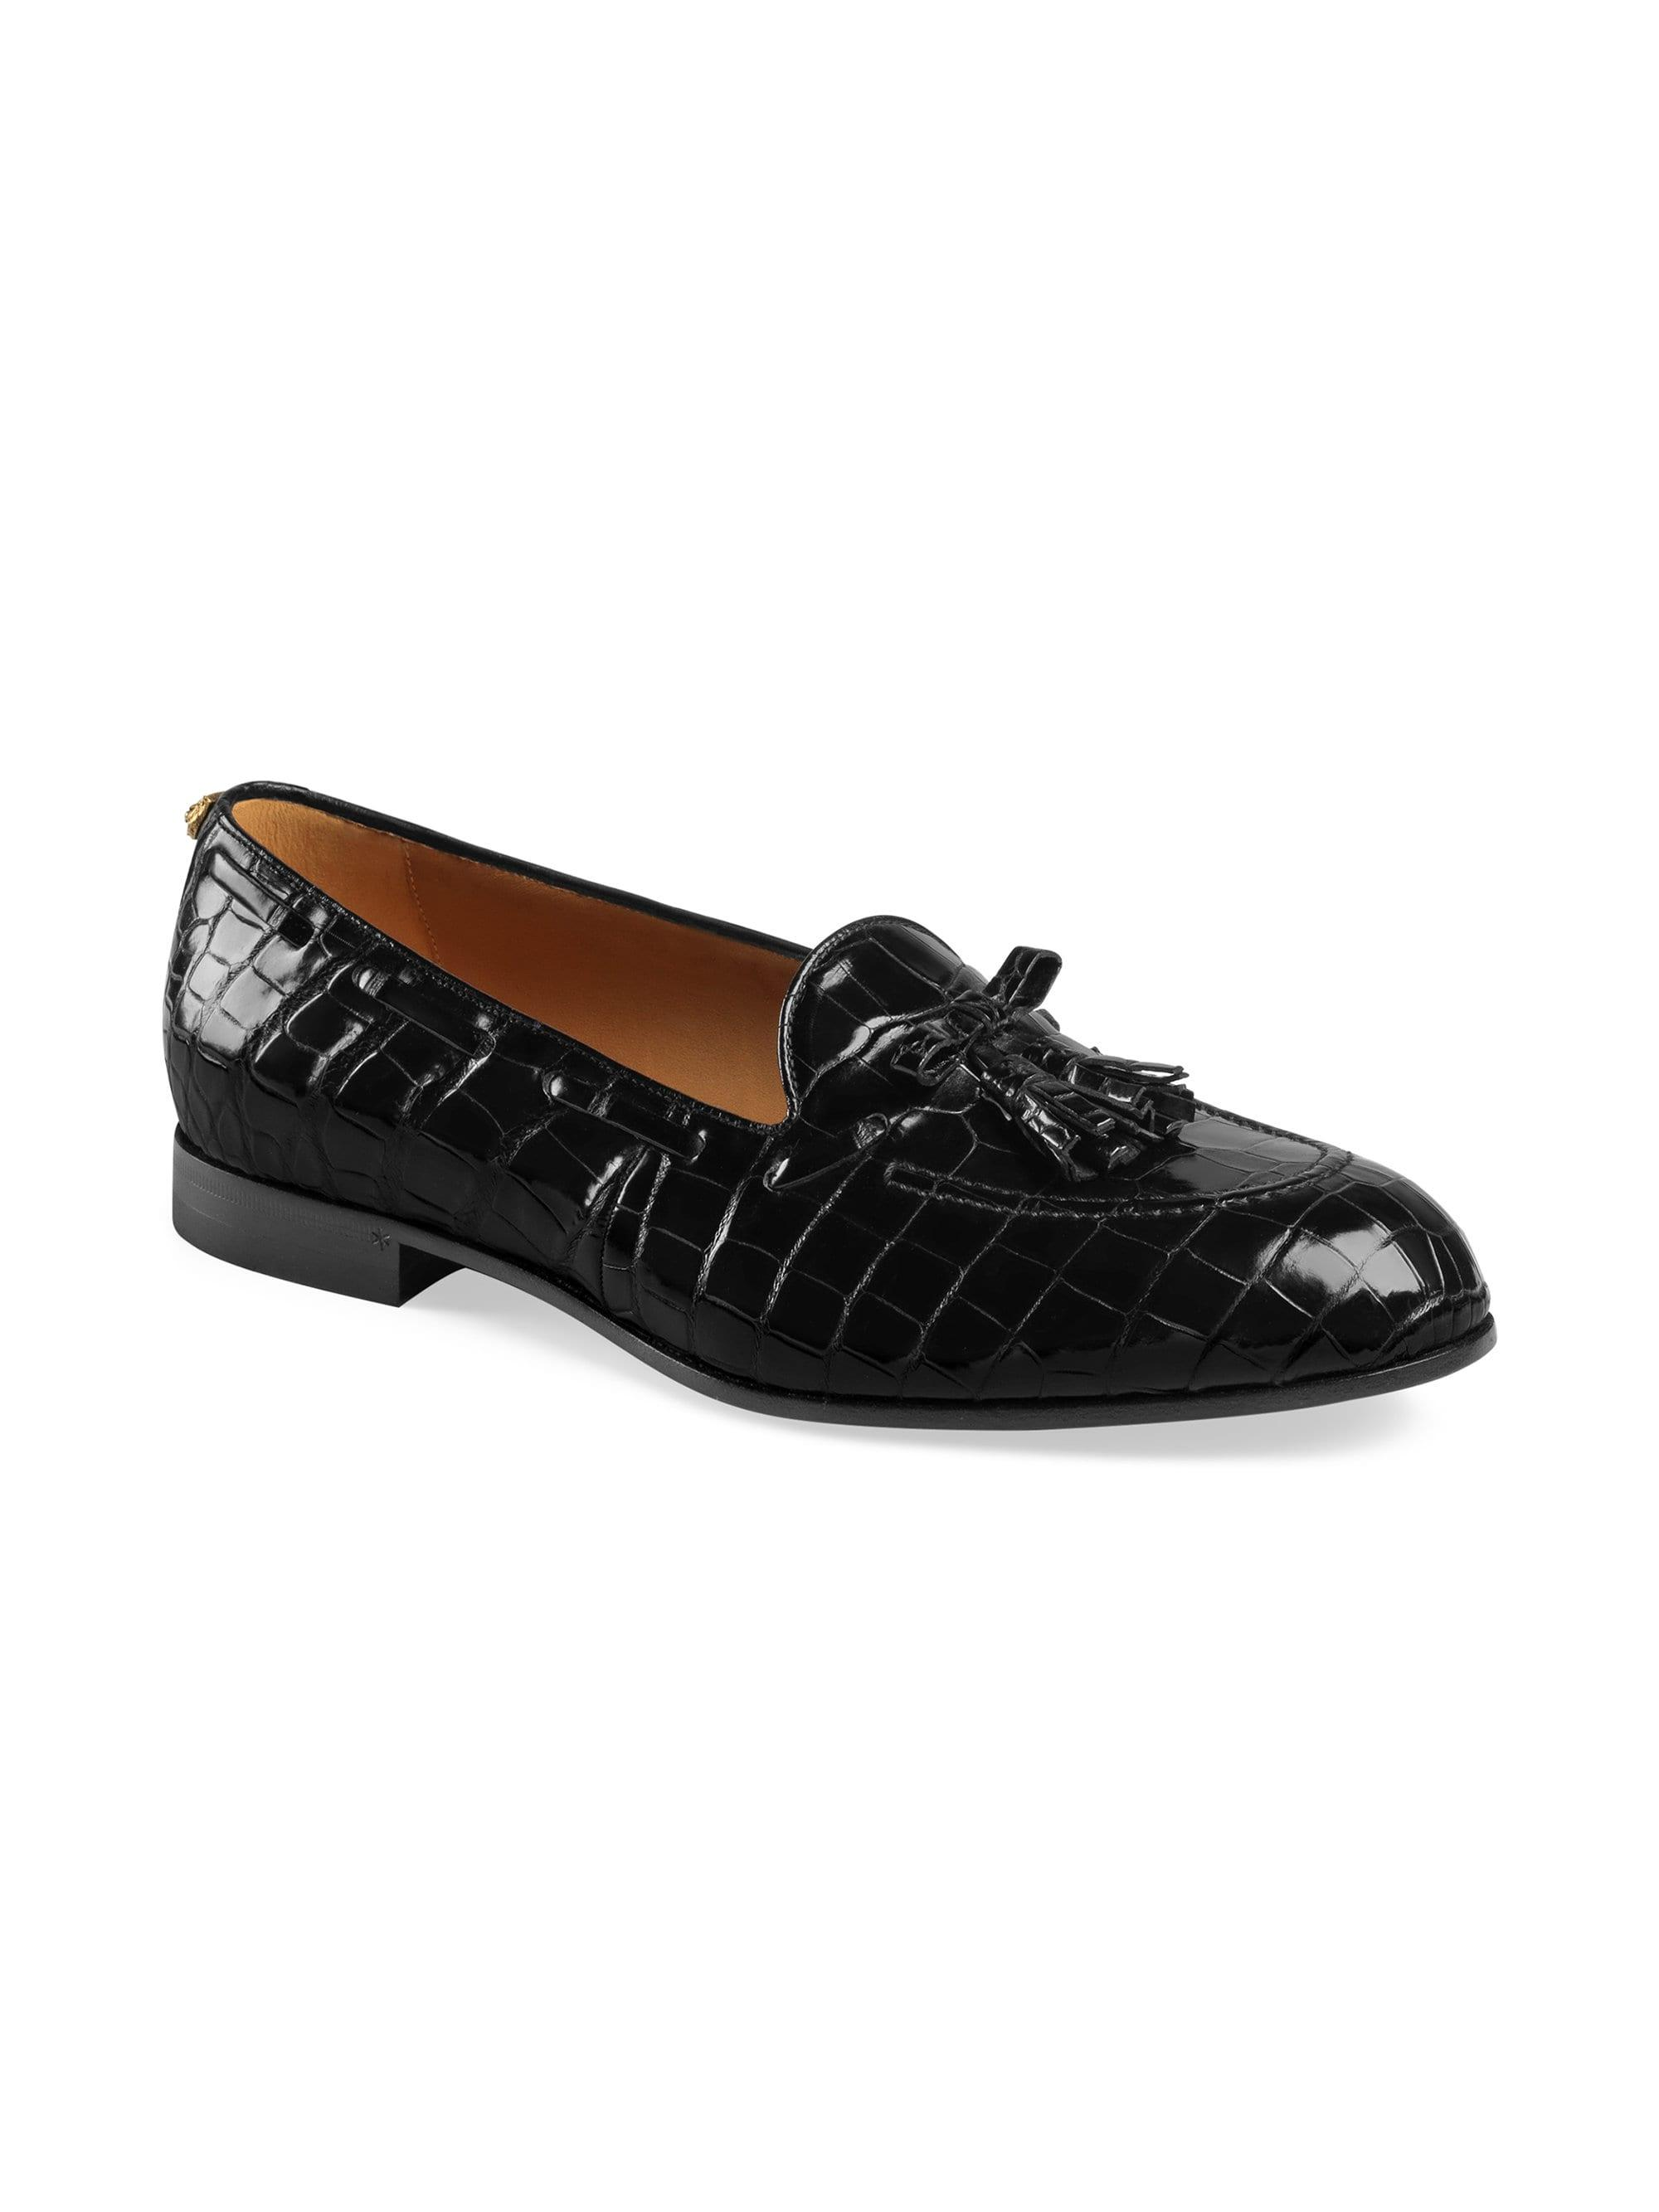 143dccf6f53 Lyst - Gucci Men s Crocodile Tassel Loafers - Black - Size 9.5 Uk ...